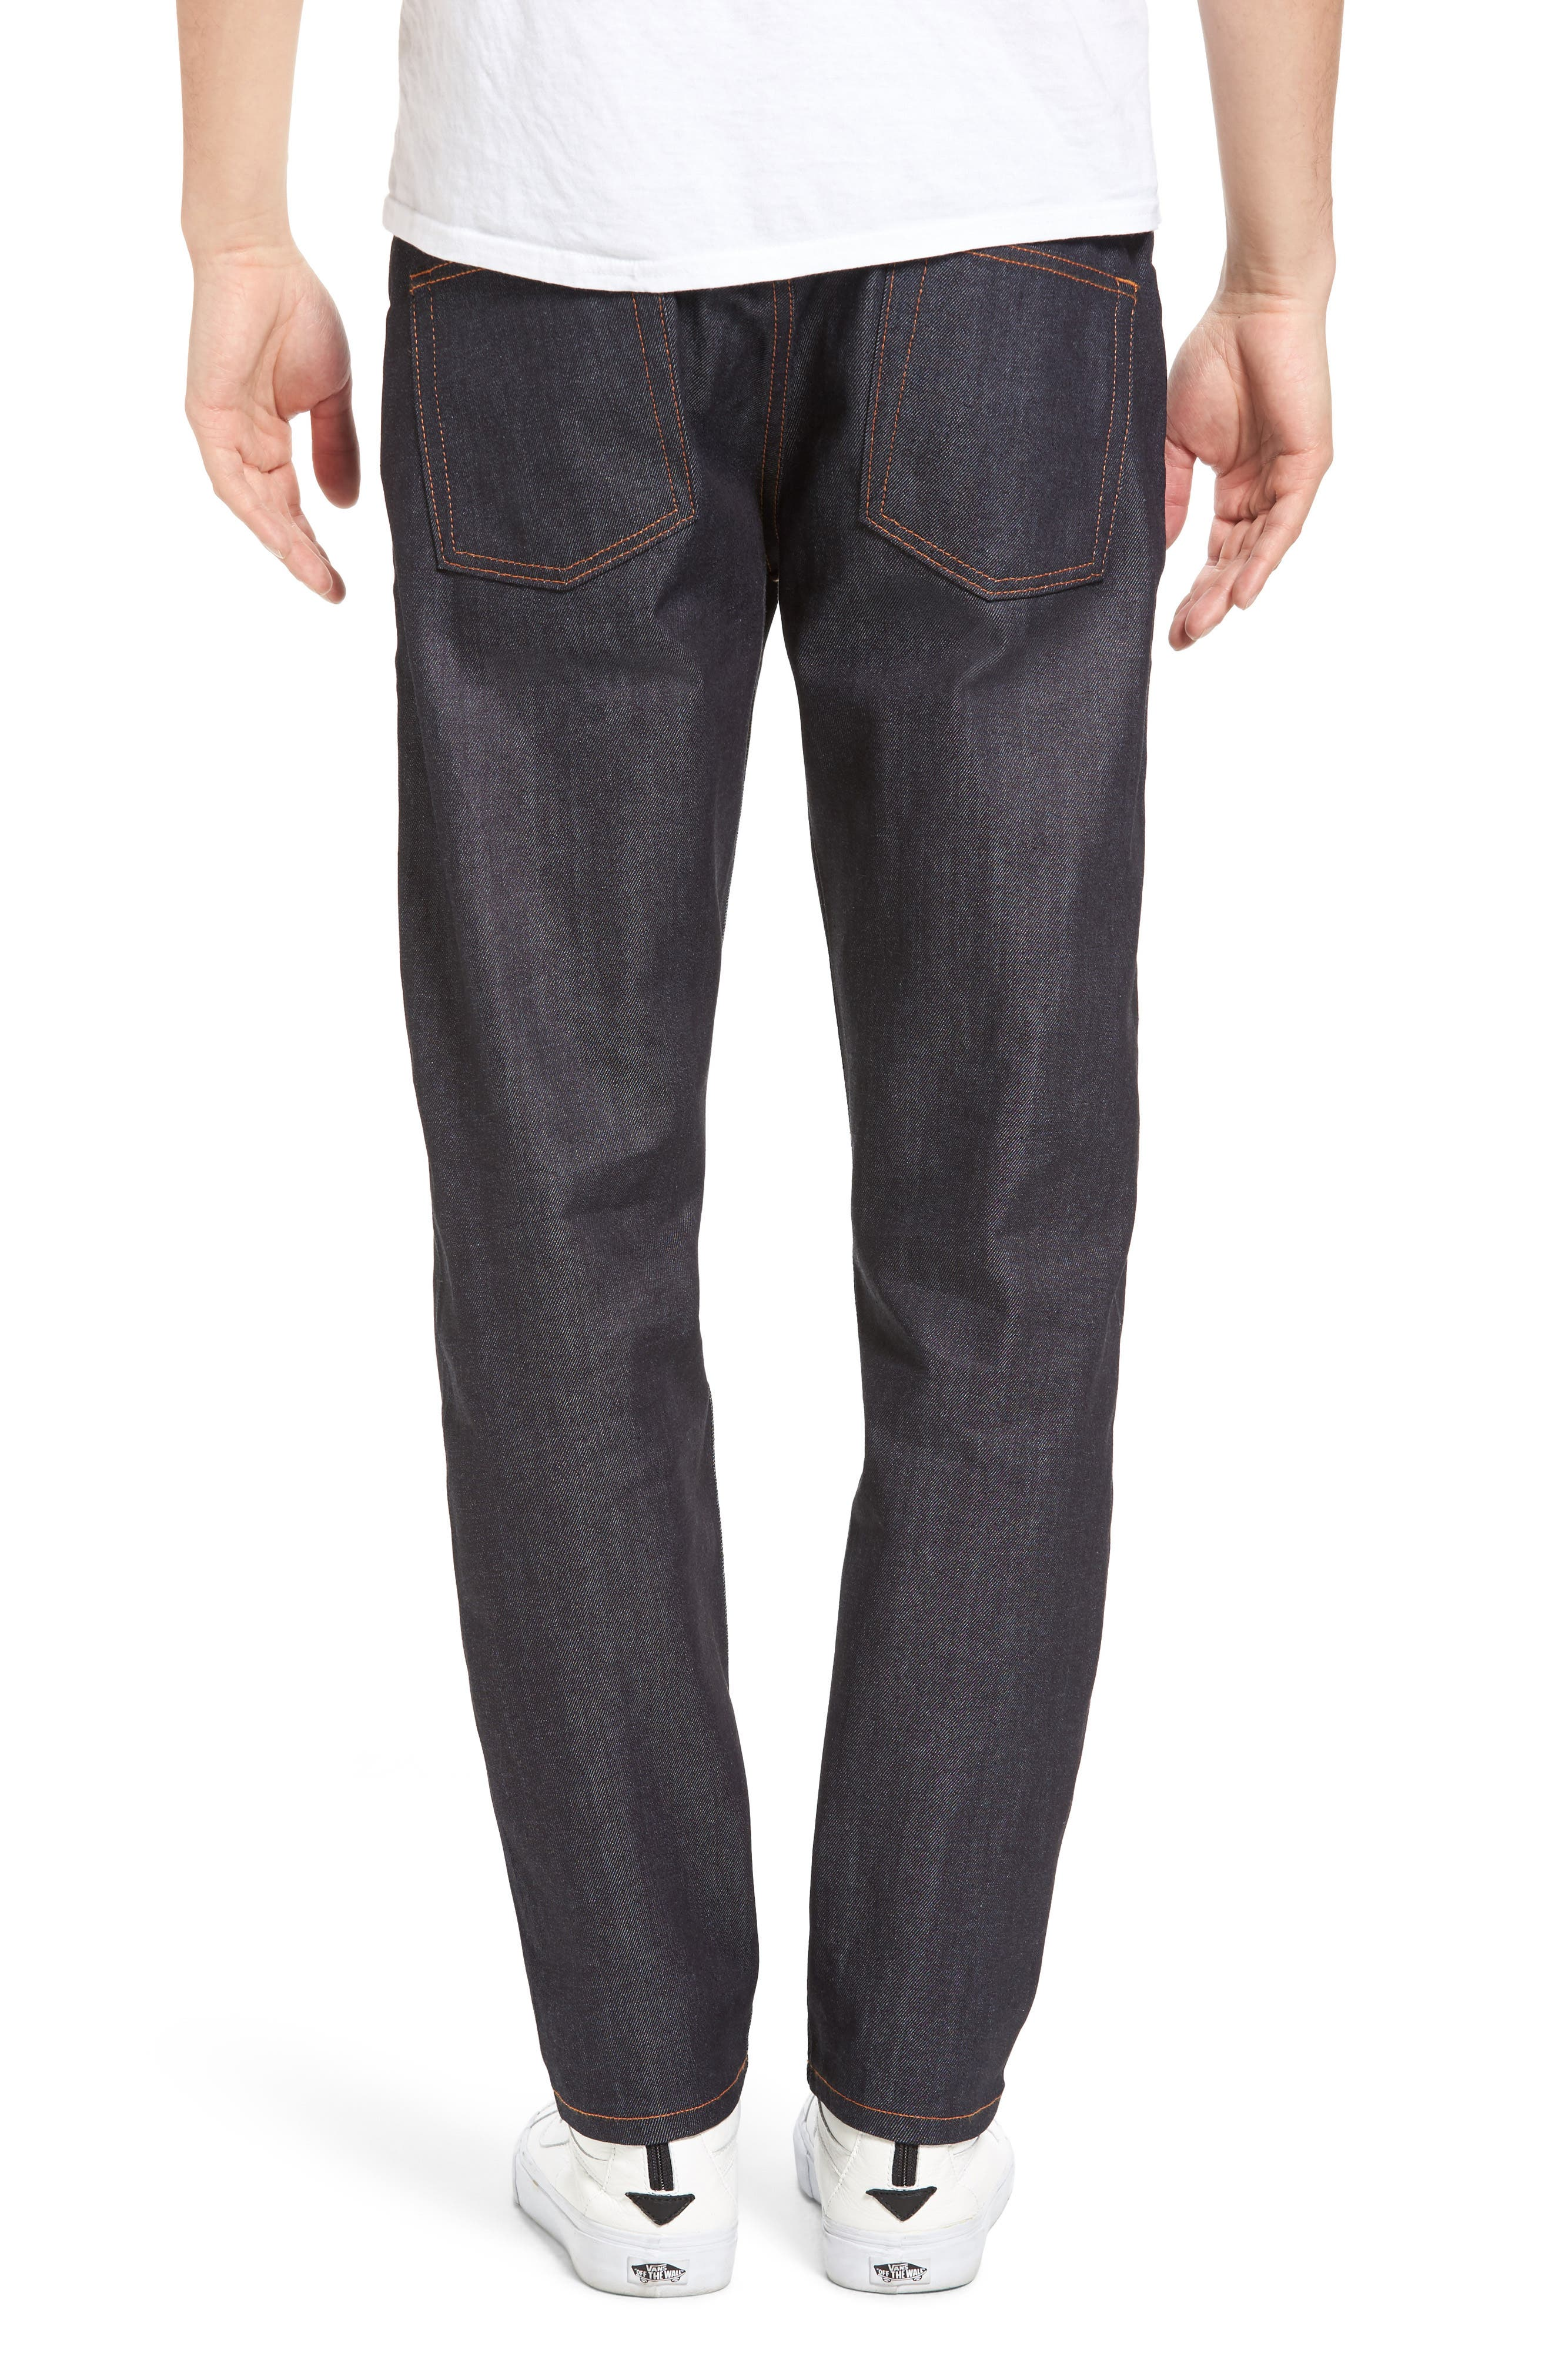 Easy Guy 11 oz. Stretch Selvedge Skinny Fit Jeans,                             Main thumbnail 1, color,                             401